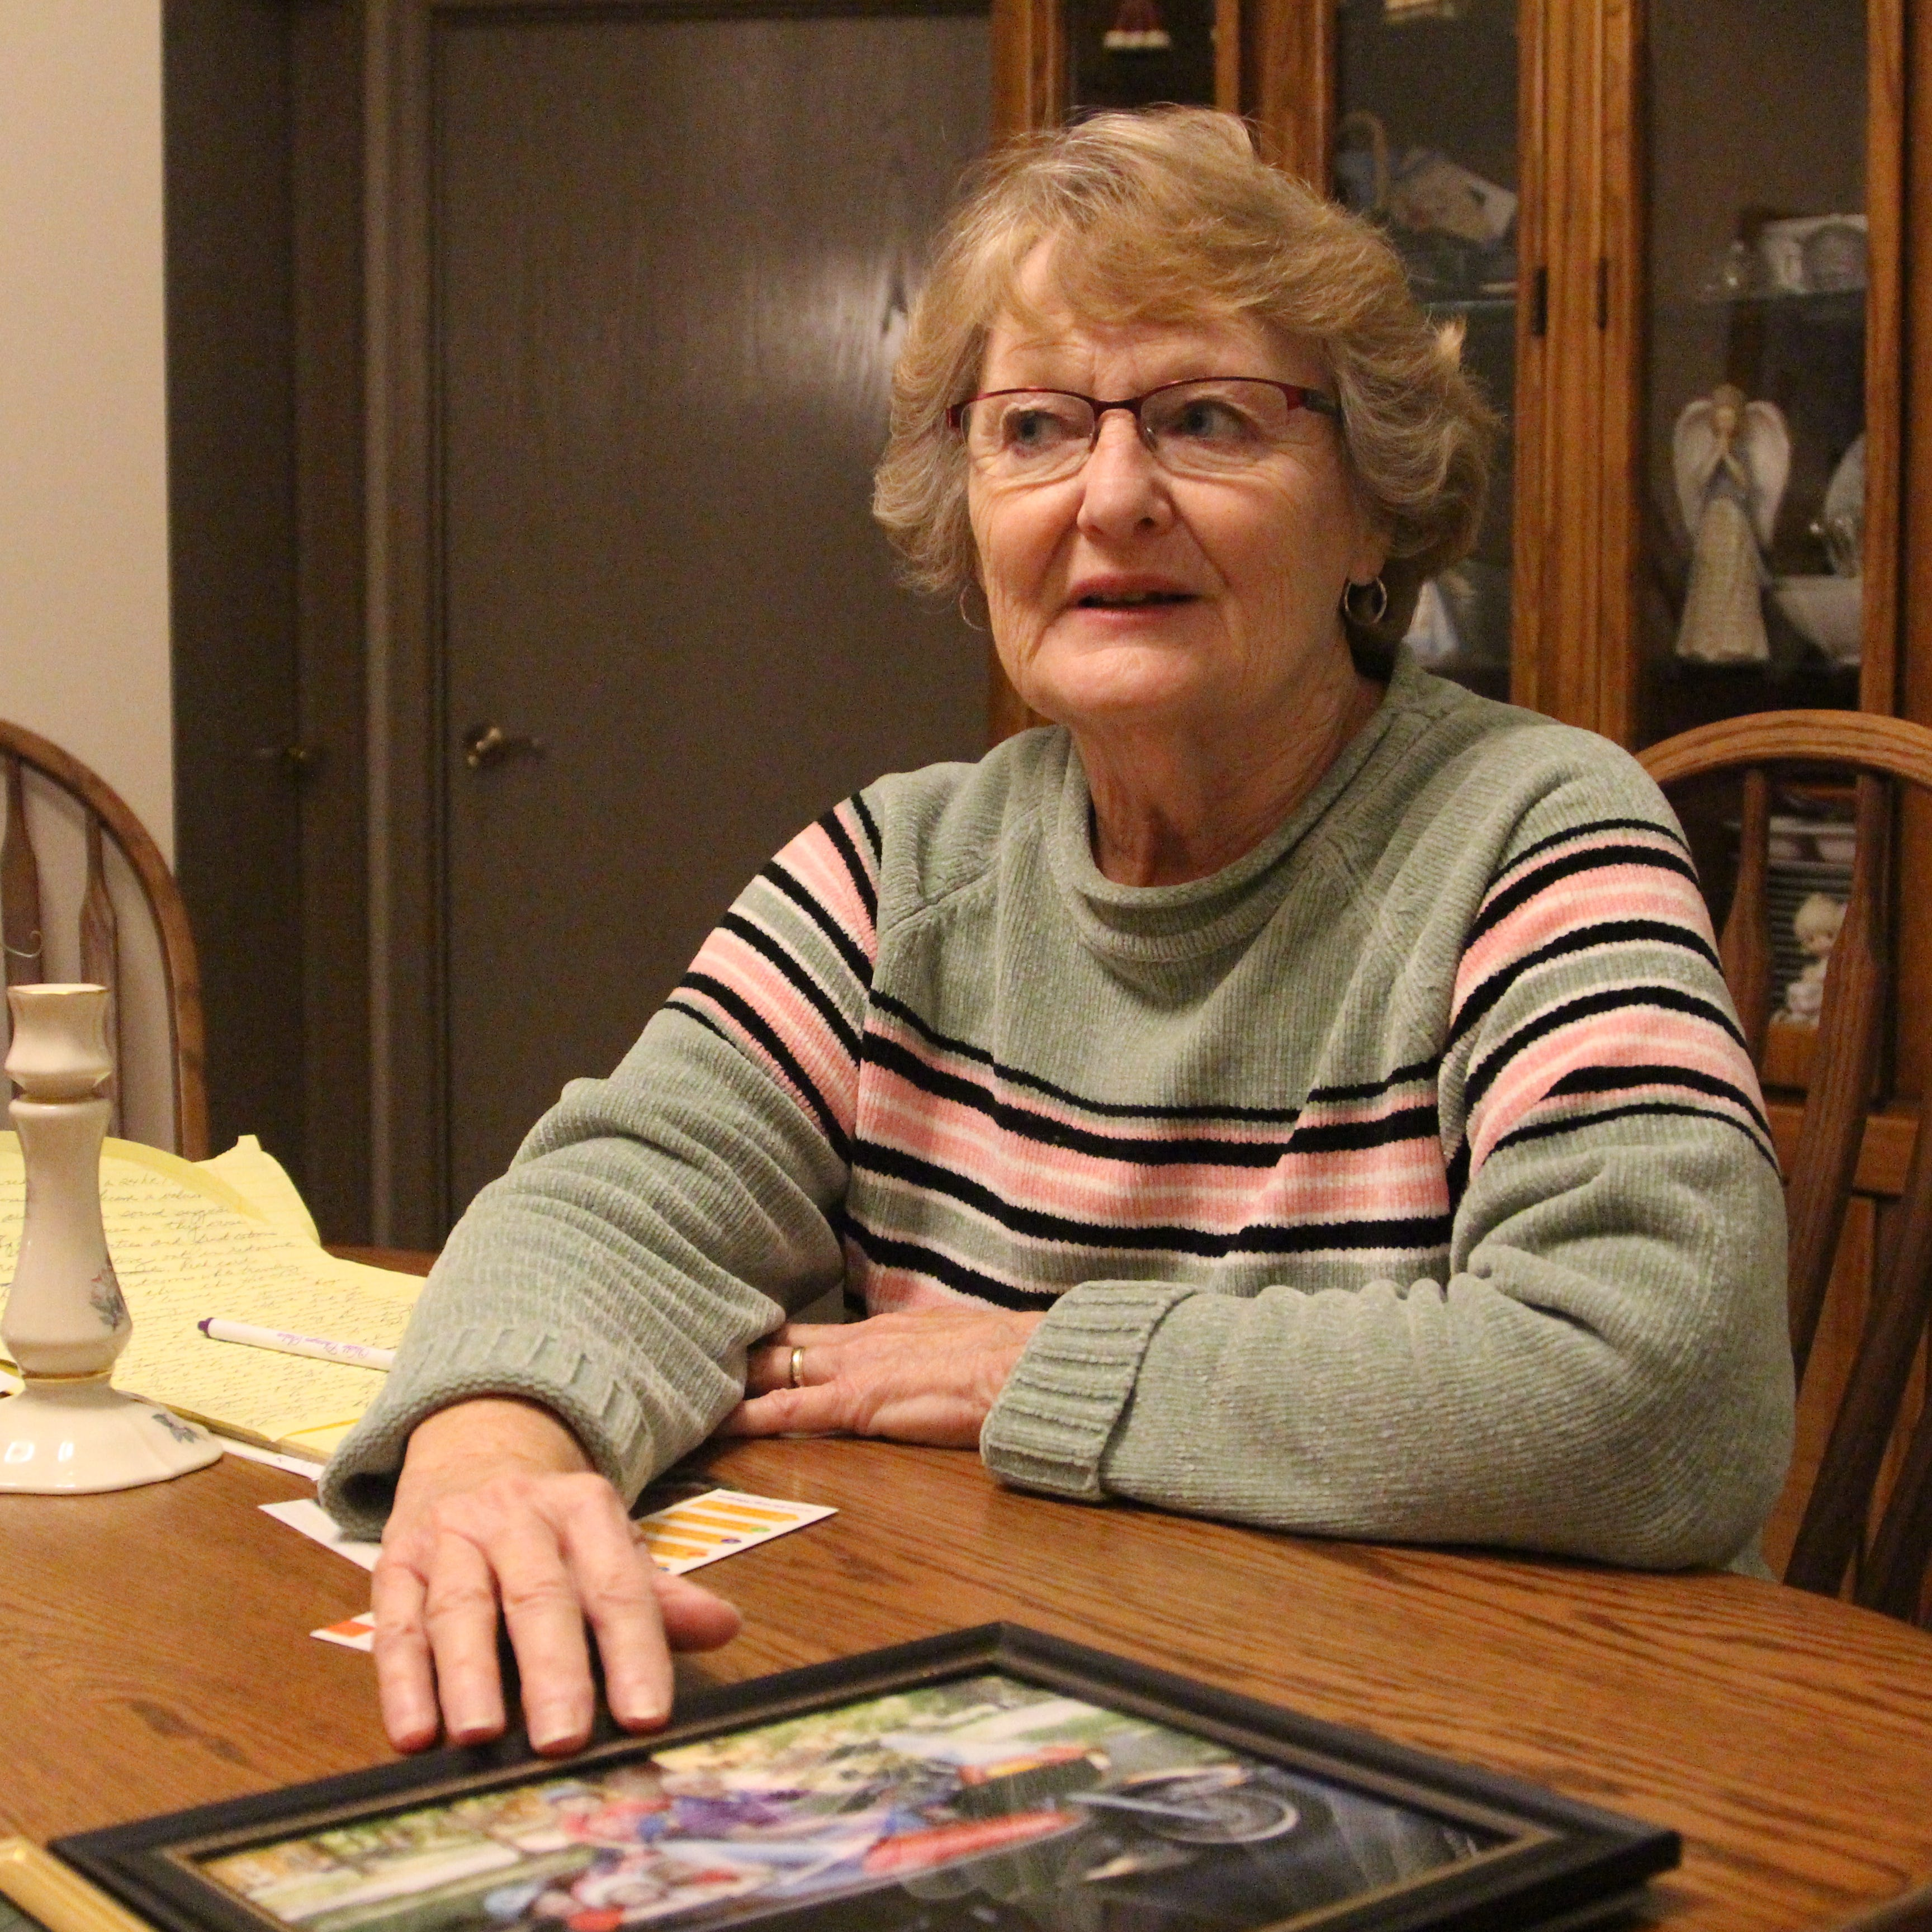 Marion wife of man with Alzheimer's urges others not to go it alone